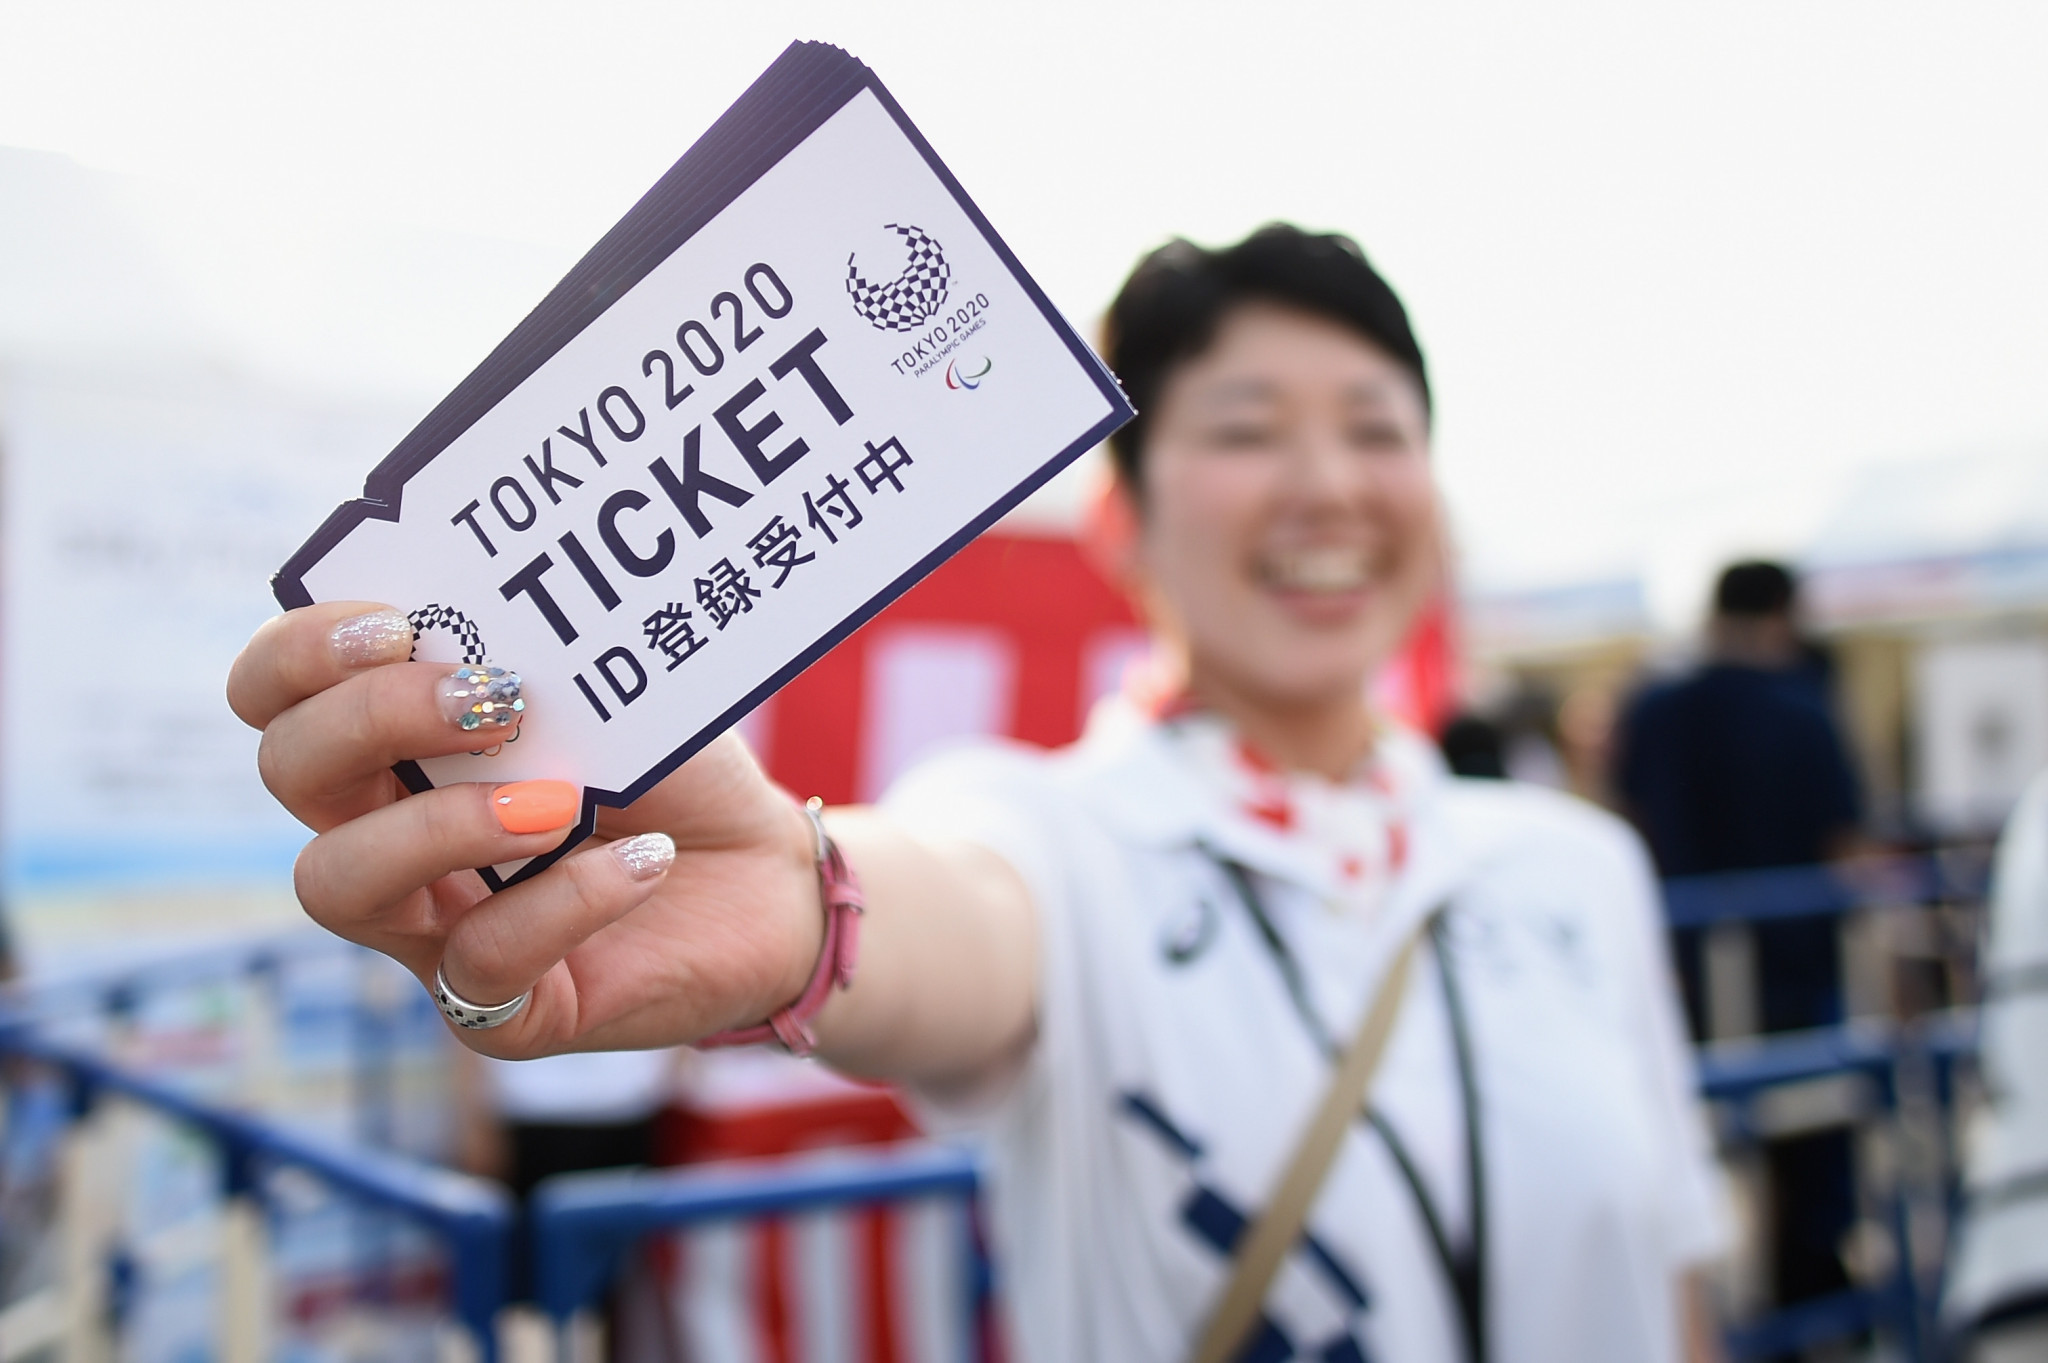 Yahoo Japan Corporation becomes the 16th official supporter of Tokyo 2020 ©Getty Images